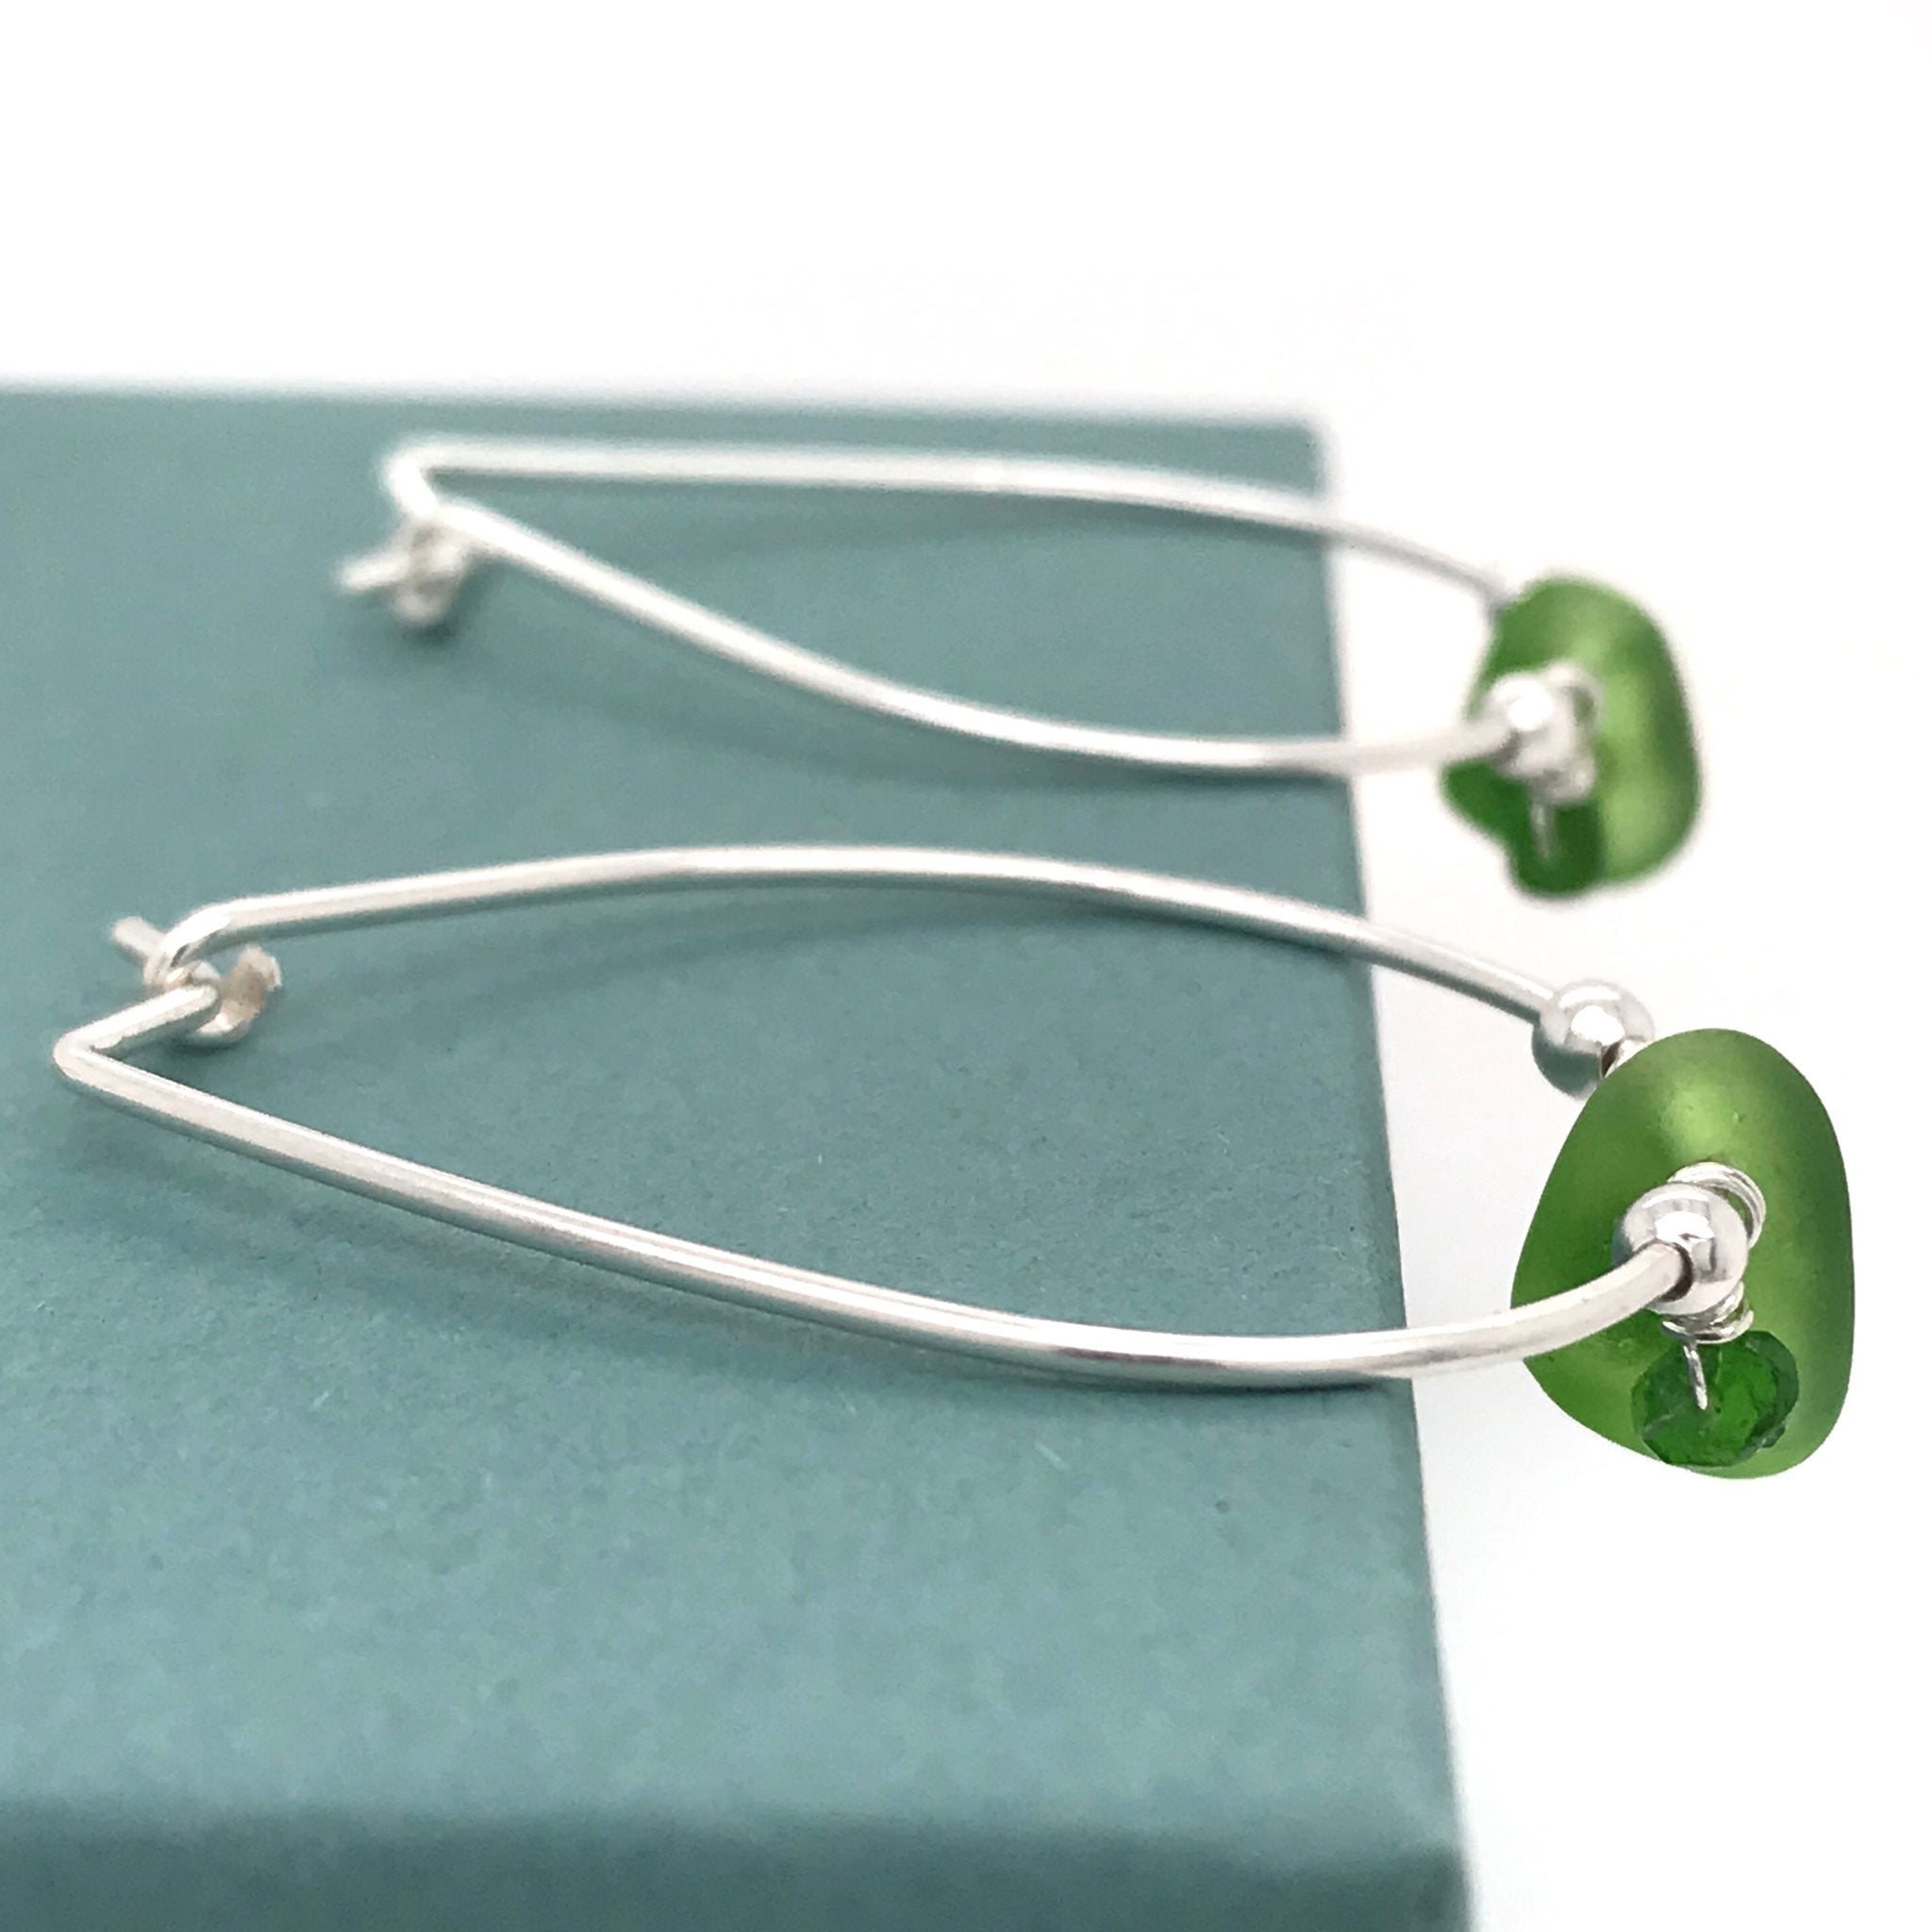 bright green seaglass on silver hoop earrings kriket broadhurst jewellery